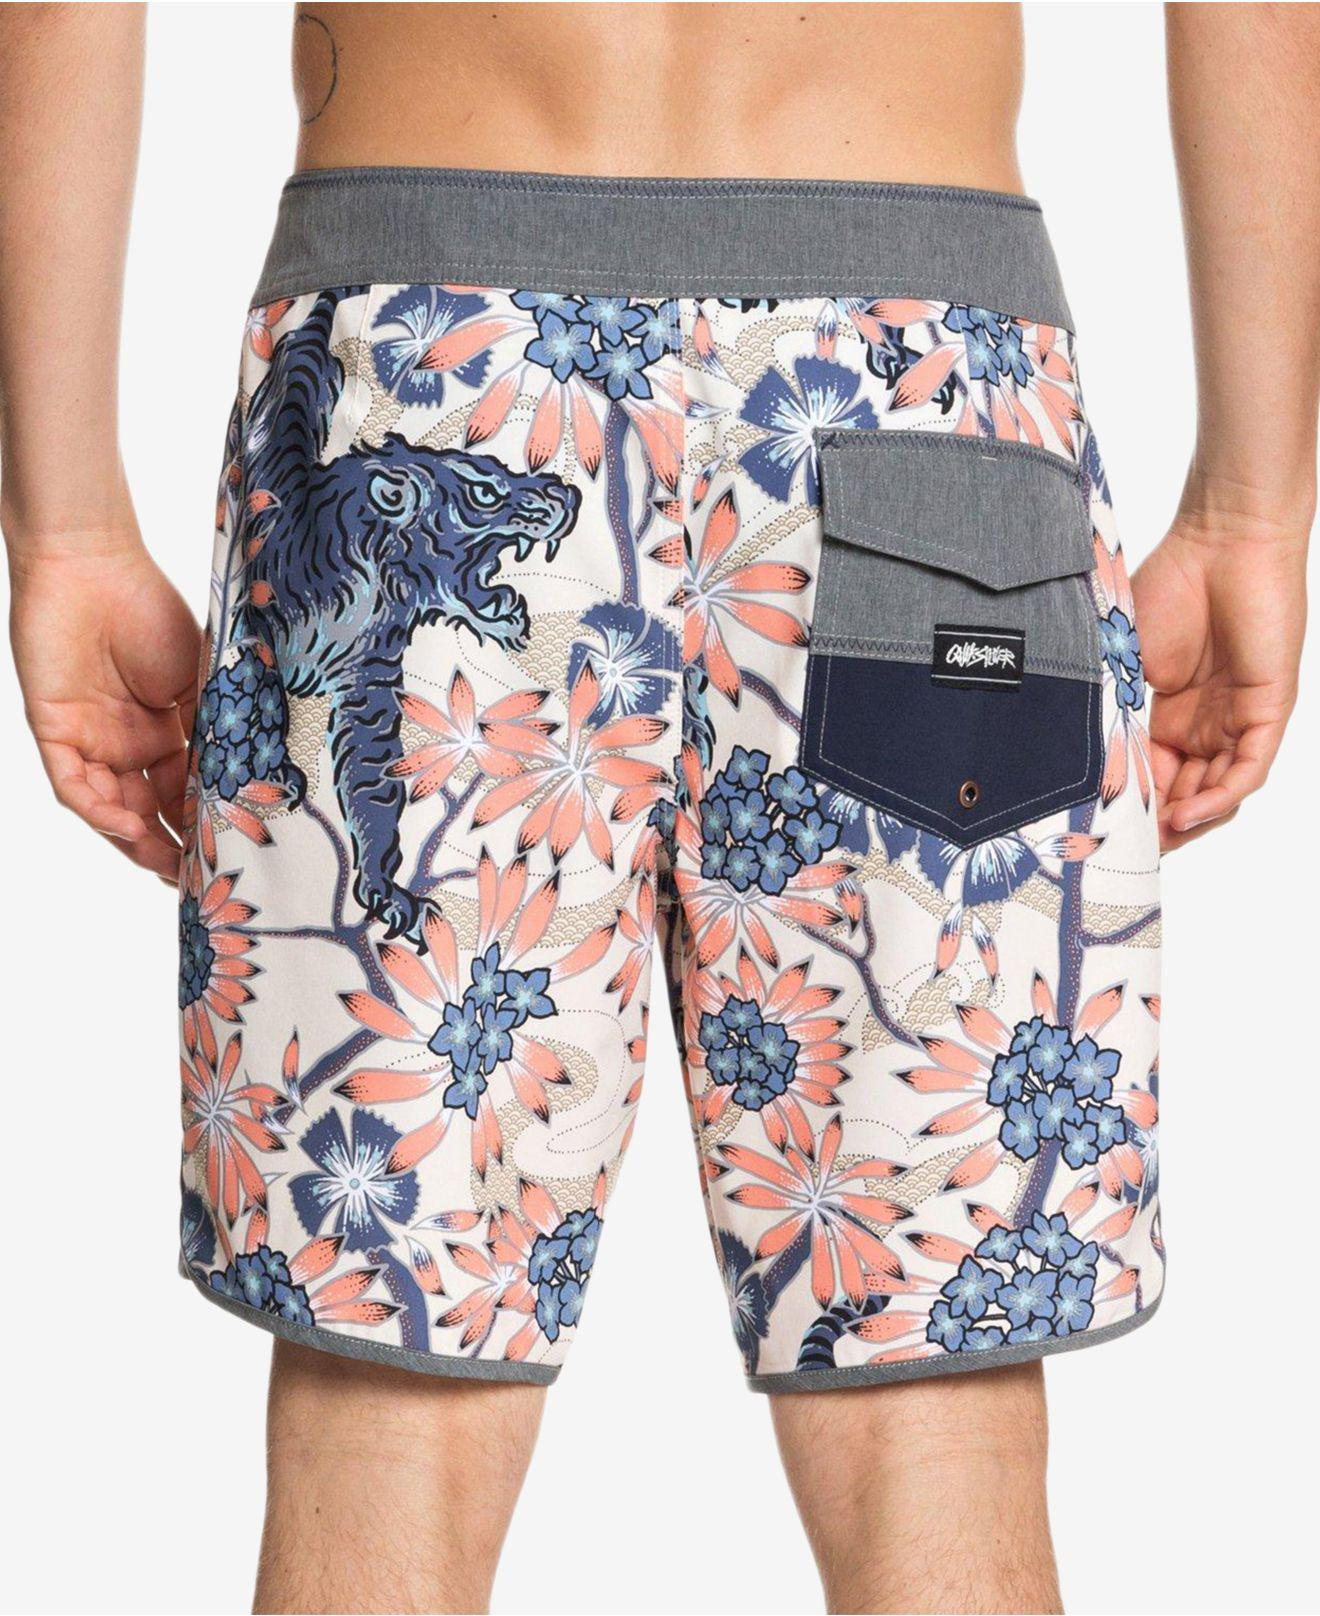 low priced 83f55 16419 quiksilver-Birch-Highline-Silent-Fury-19-Board-Shorts.jpeg